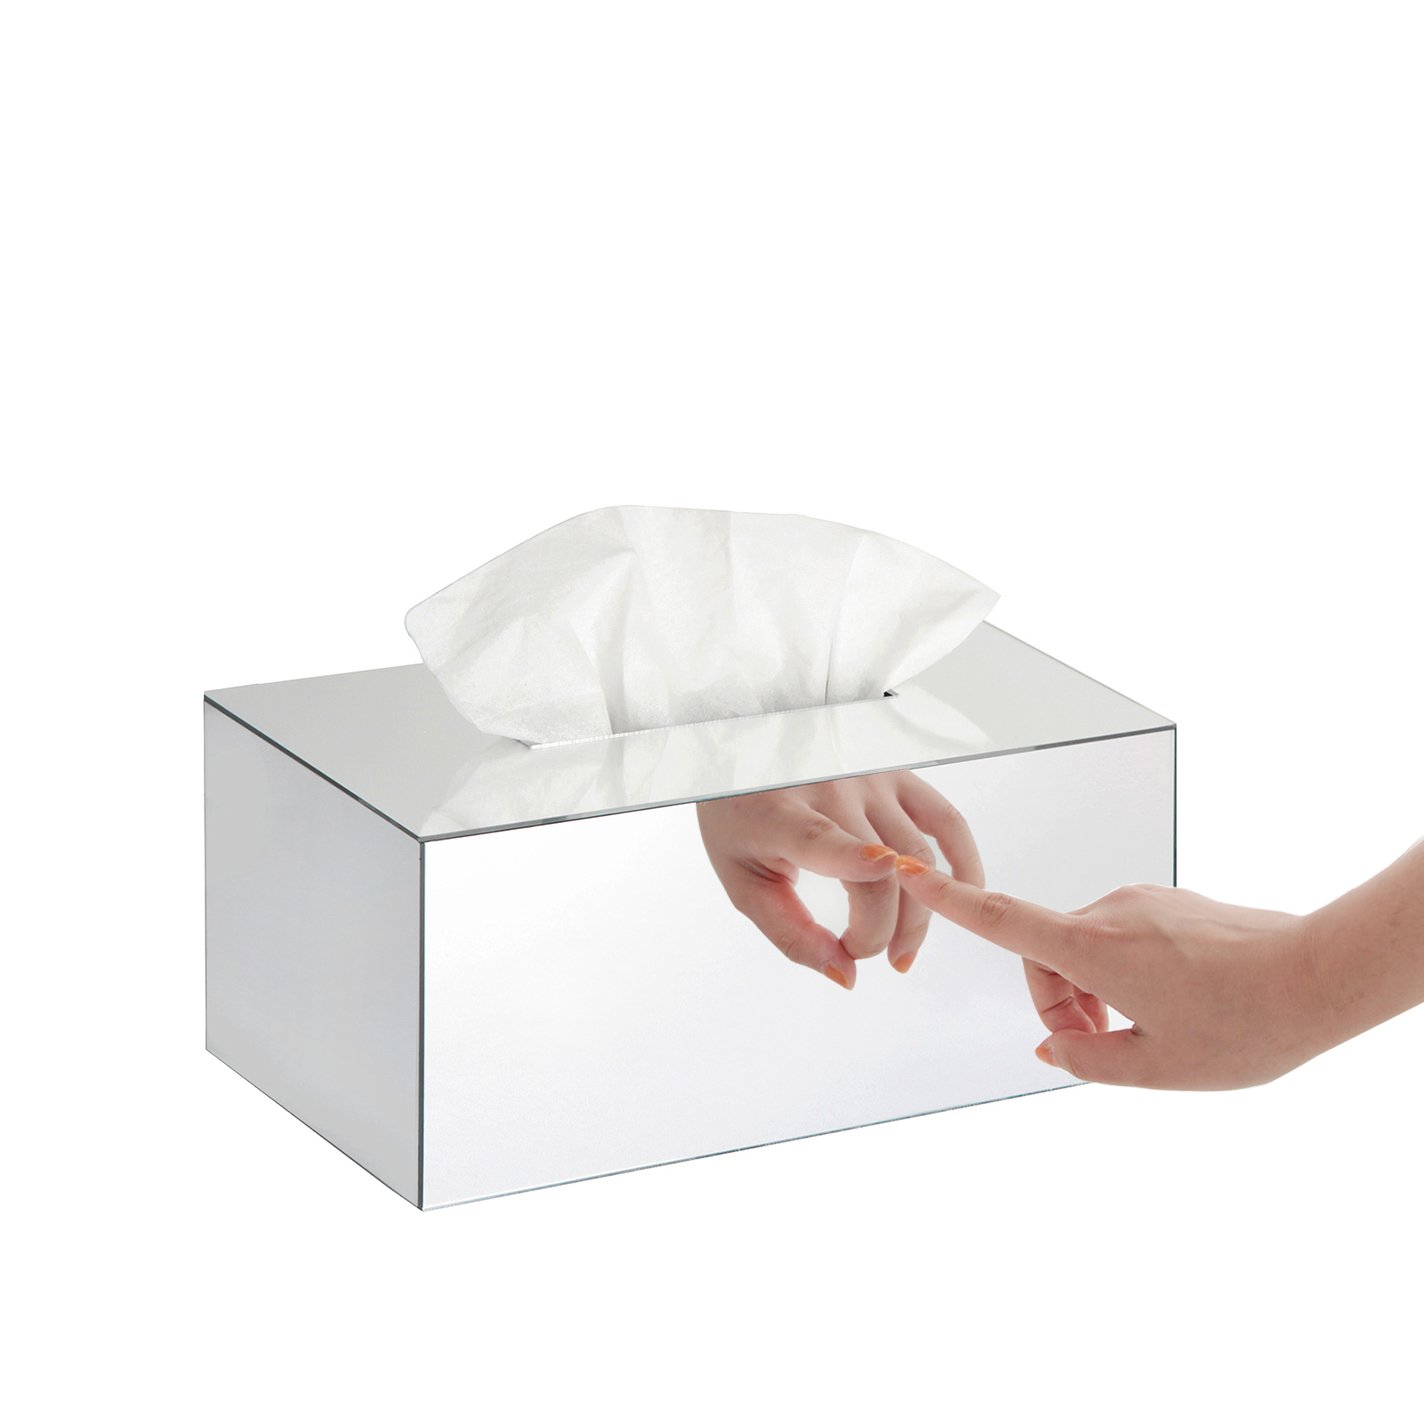 J JACKCUBE DESIGN JackCubeDesign Overall Acrylic Mirror Rectangle Tissue Box Holder Case Kleenex Storage Case Stand Box Napkin Holder Organizer (9.53 x 5.63 x 4.33 inches)- :MK219B by J JACKCUBE DESIGN